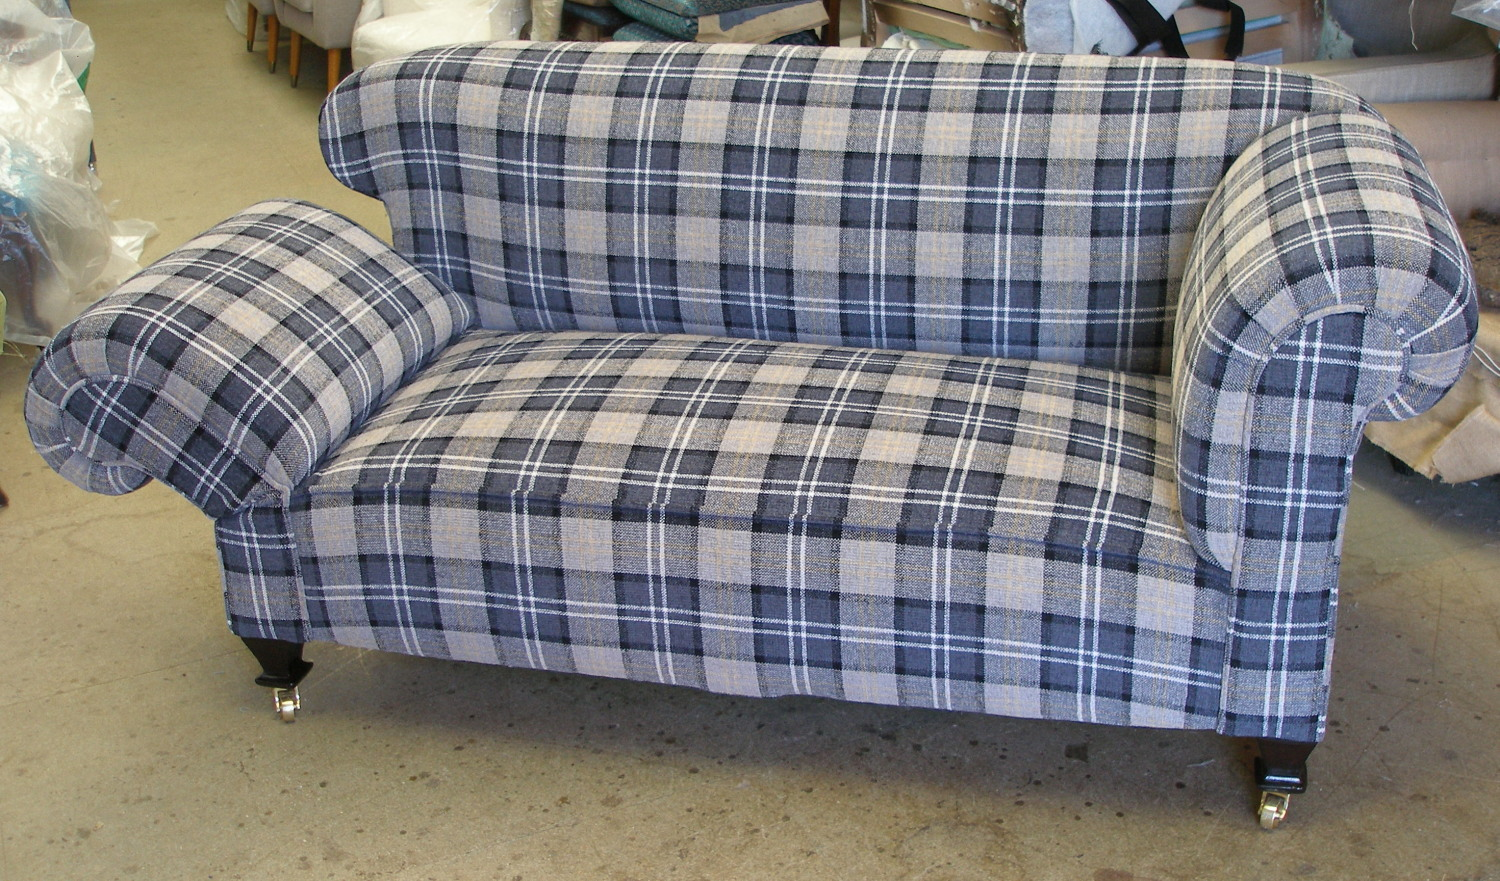 tartan chesterfield sofa red living room pinterest edwardian 1930s double drop arm 2str sold njh